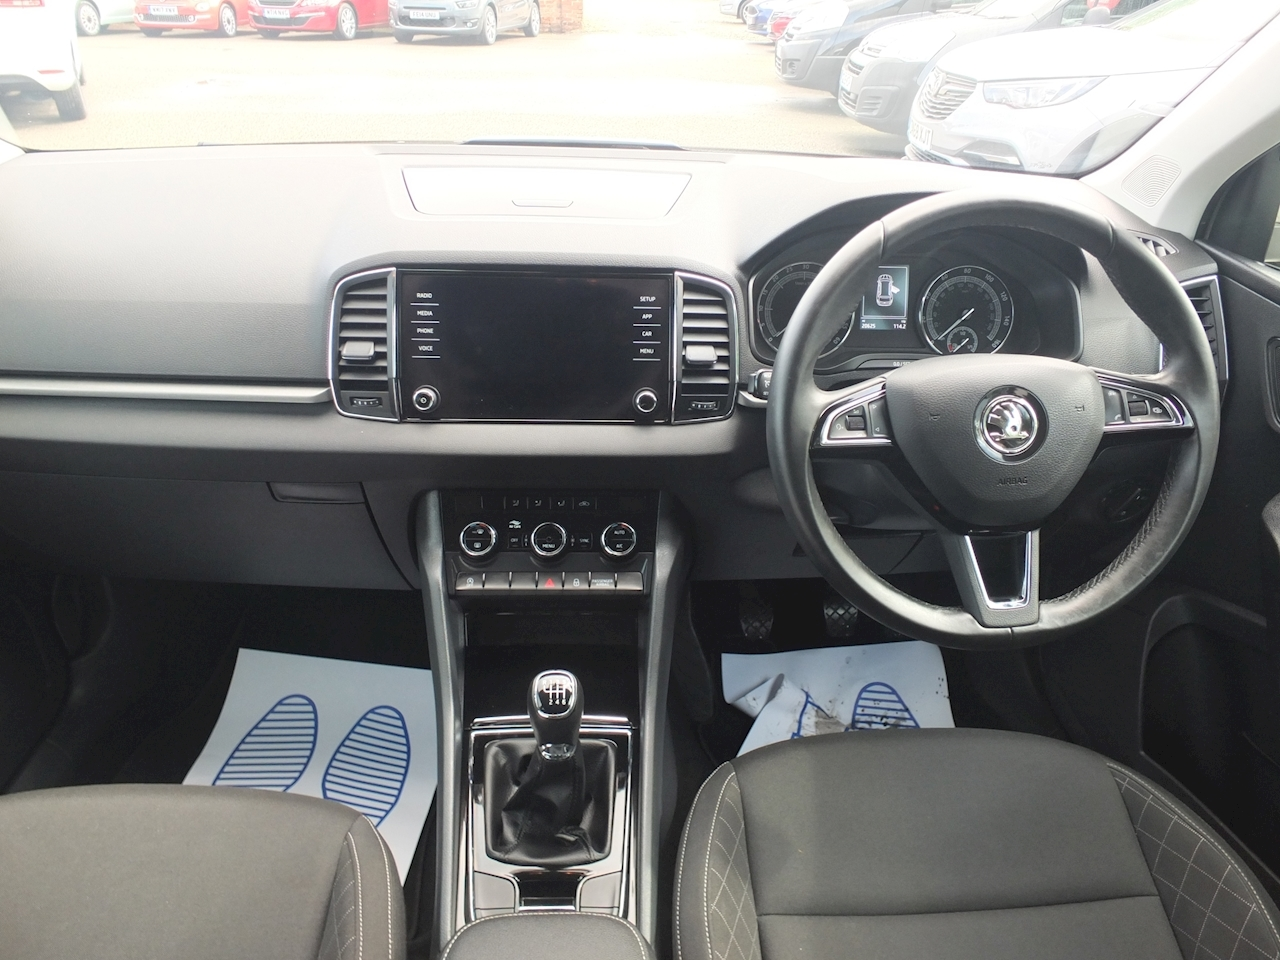 Karoq Se Tdi Estate 1.6 Manual Diesel